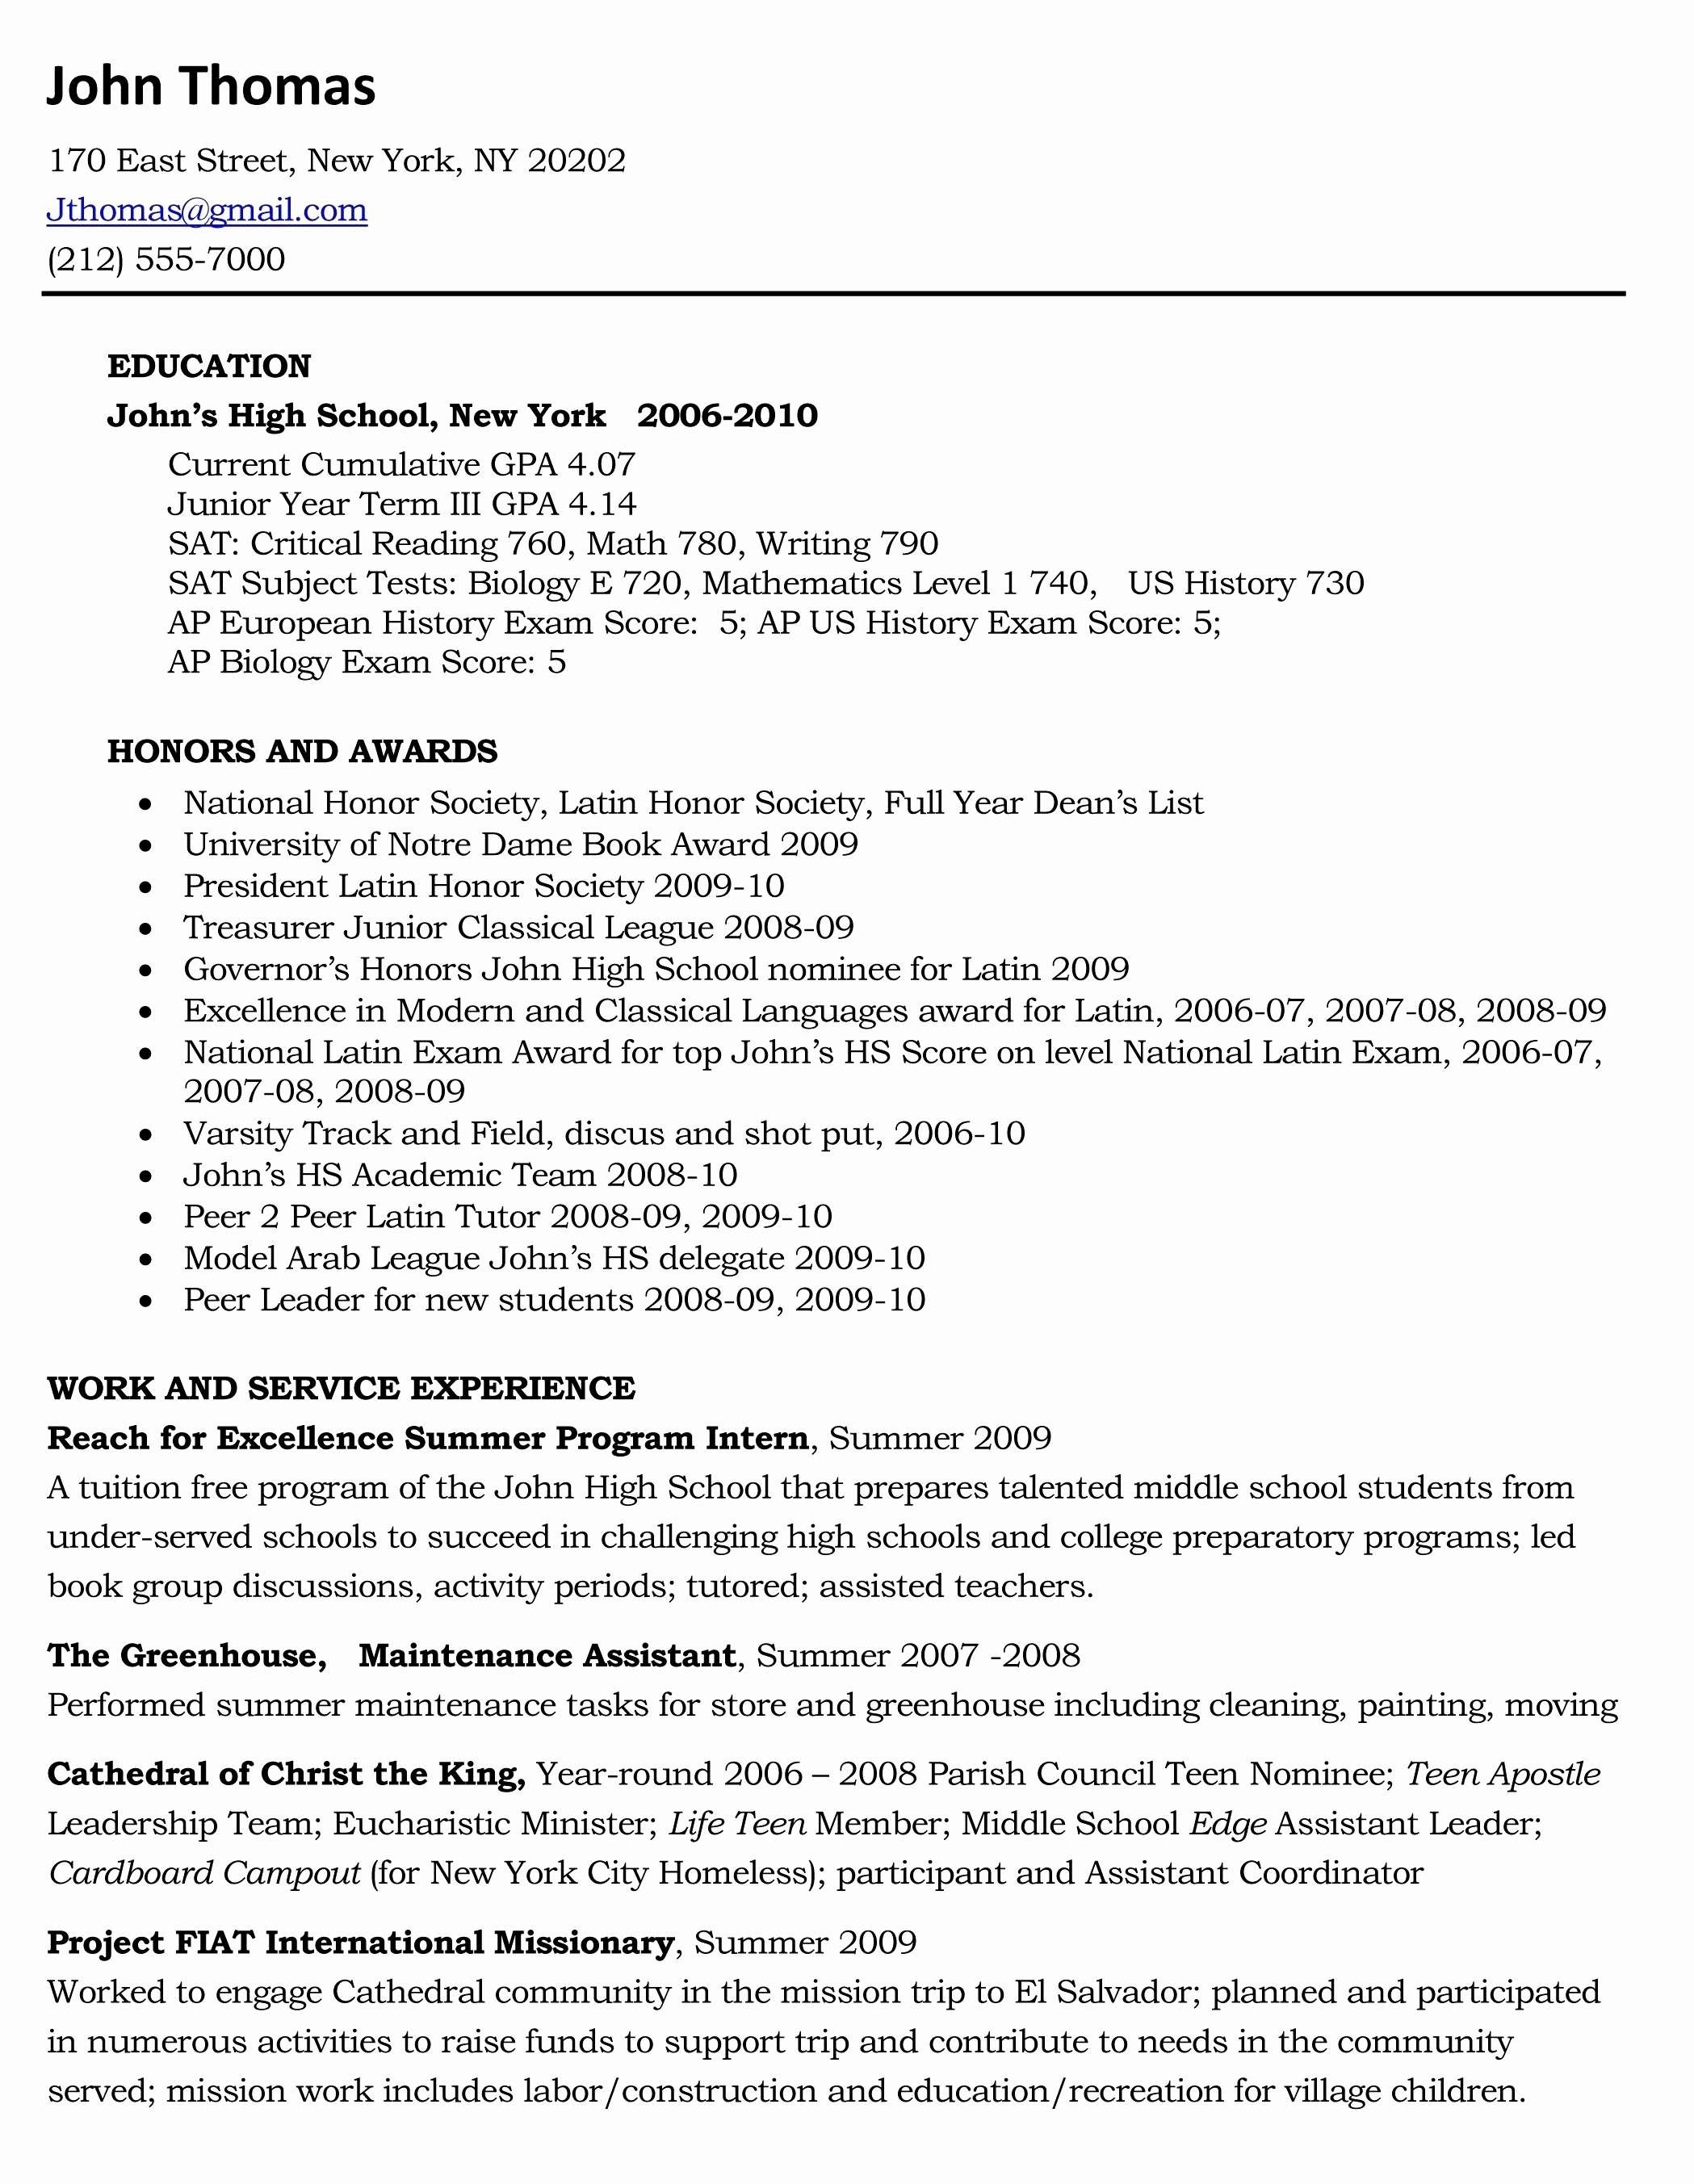 Mission Trip Letter Template - Doing A Resume Fresh Building Maintenance Resume Beautiful Example A